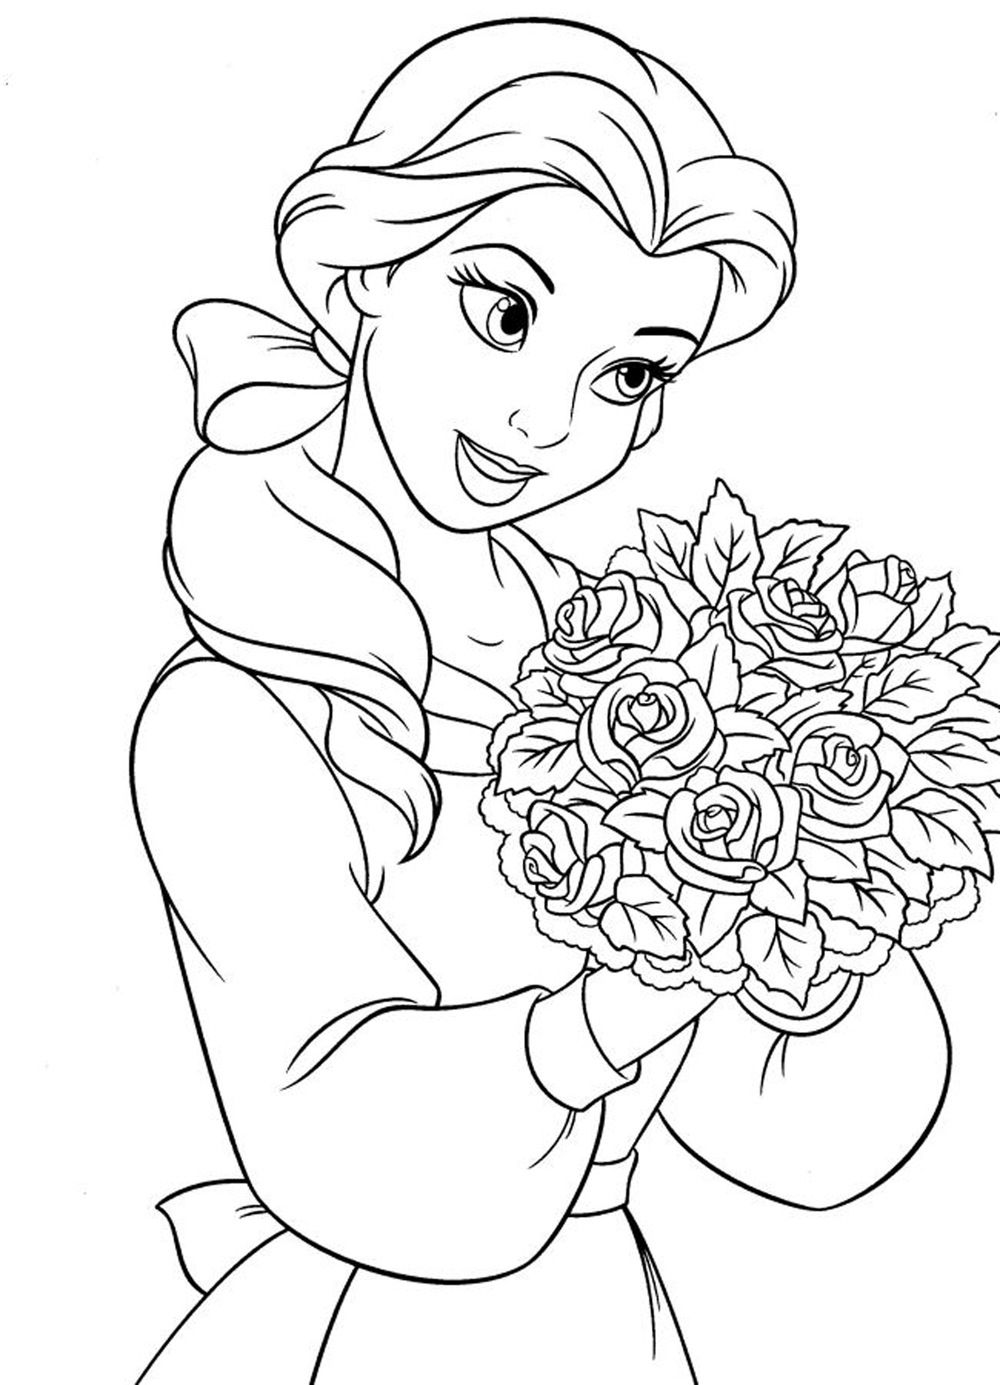 coloring sheets for girls coloring pages little girl cute coloring pages coloring for girls sheets